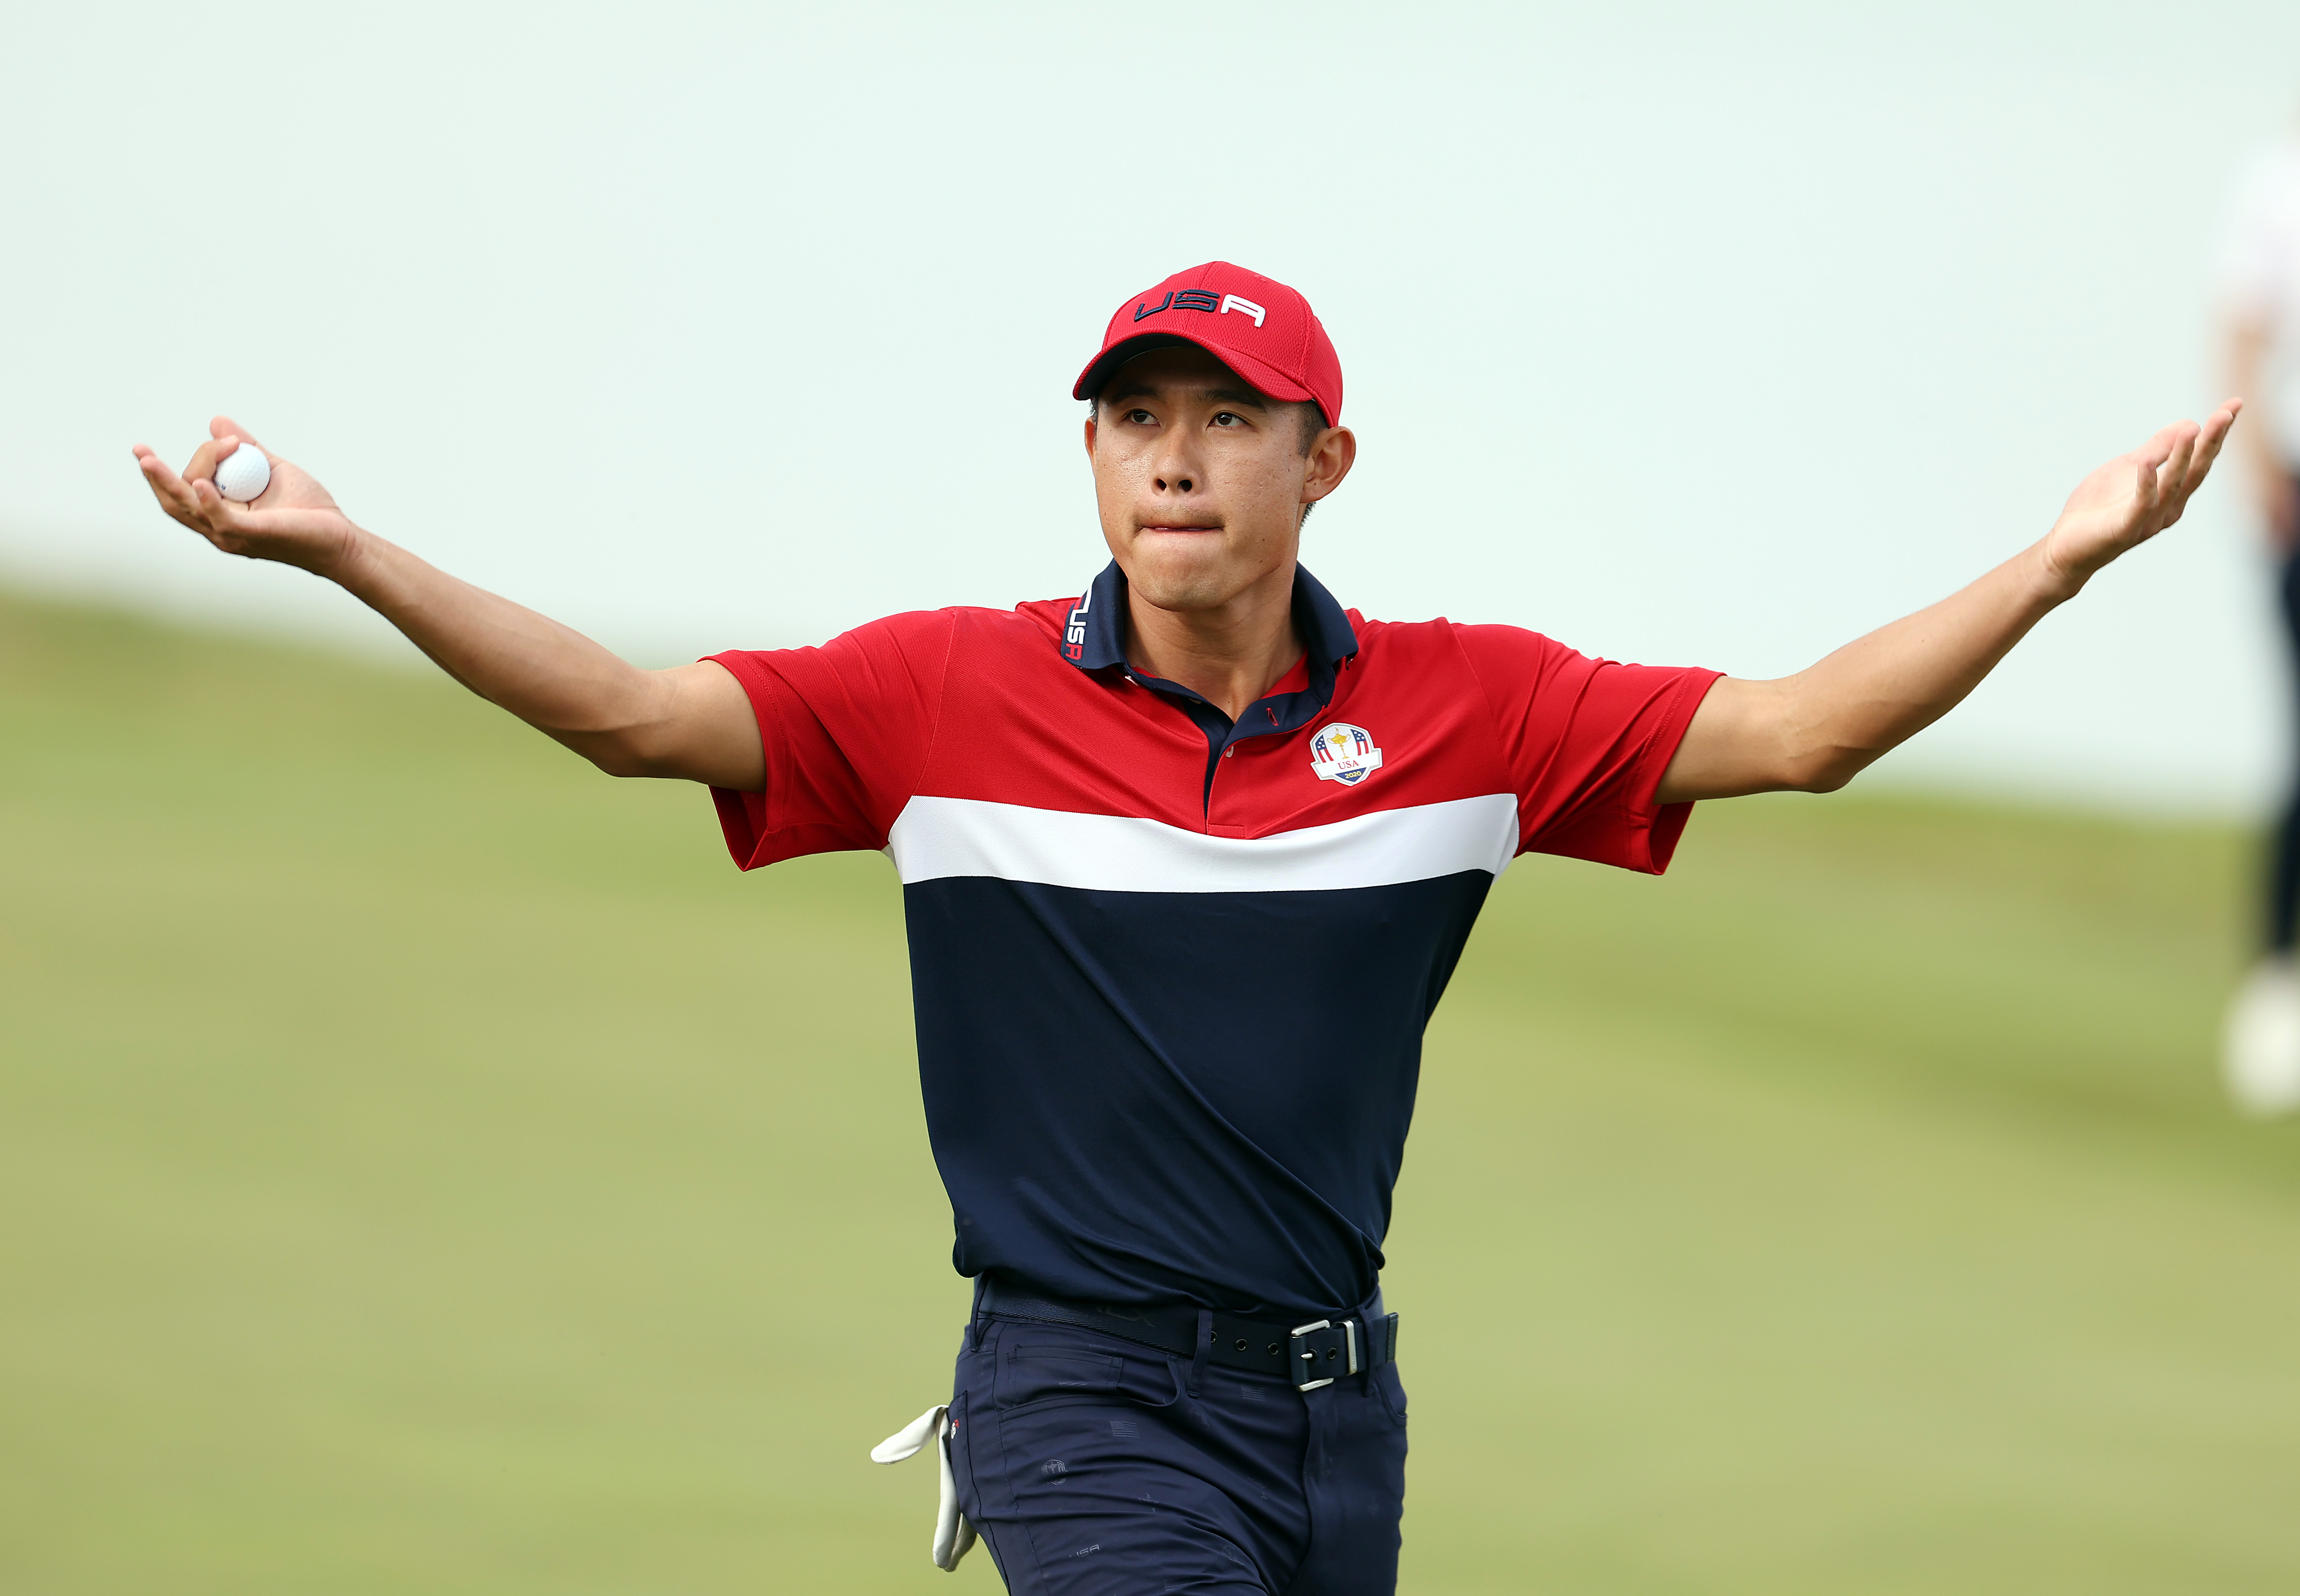 Collin Morikawa celebrates on the 17th green after winning the hole to guarantee the United States the victory at the Ryder Cup in Kohler, Wisconsin.